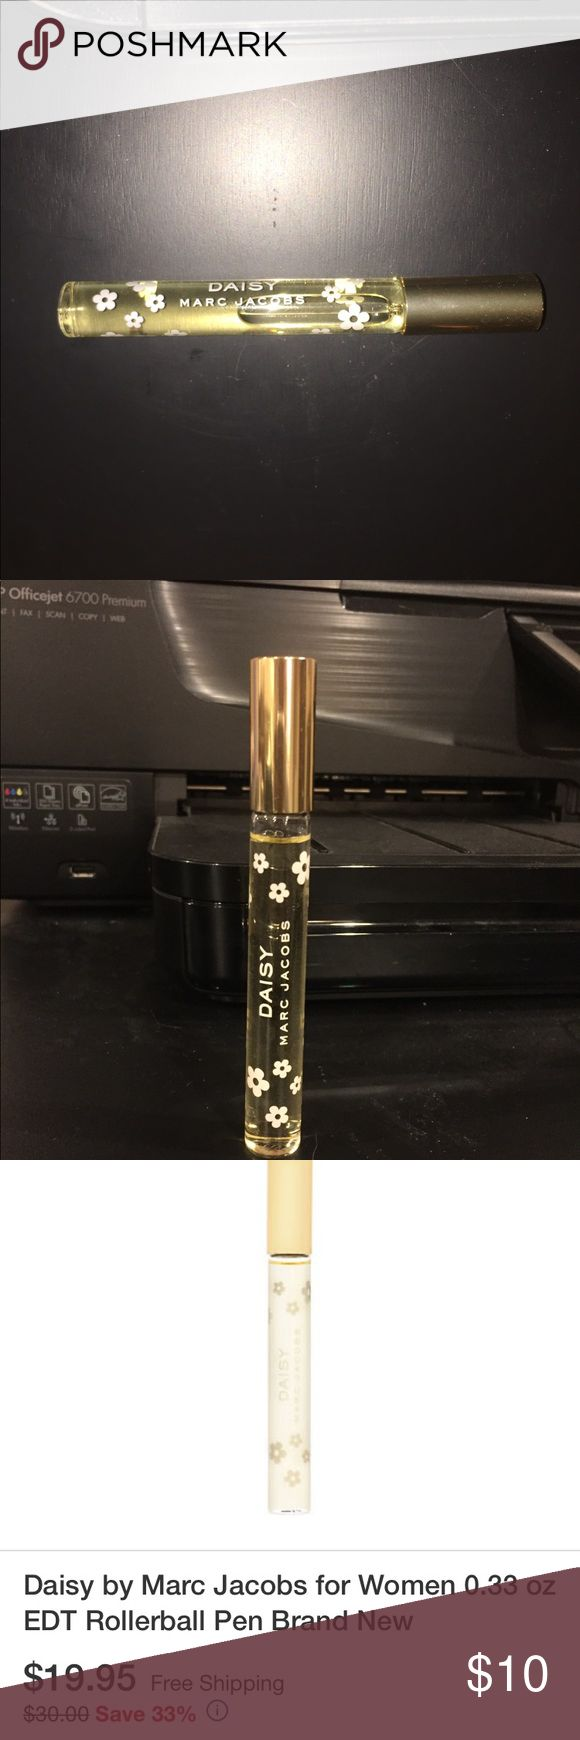 Daisy by Marc jacobs roll on travel size perfume Smells amazing. I only used it once. But I now have the actual large bottle size so I no longer have a need for this roll on perfume. Marc Jacobs Makeup